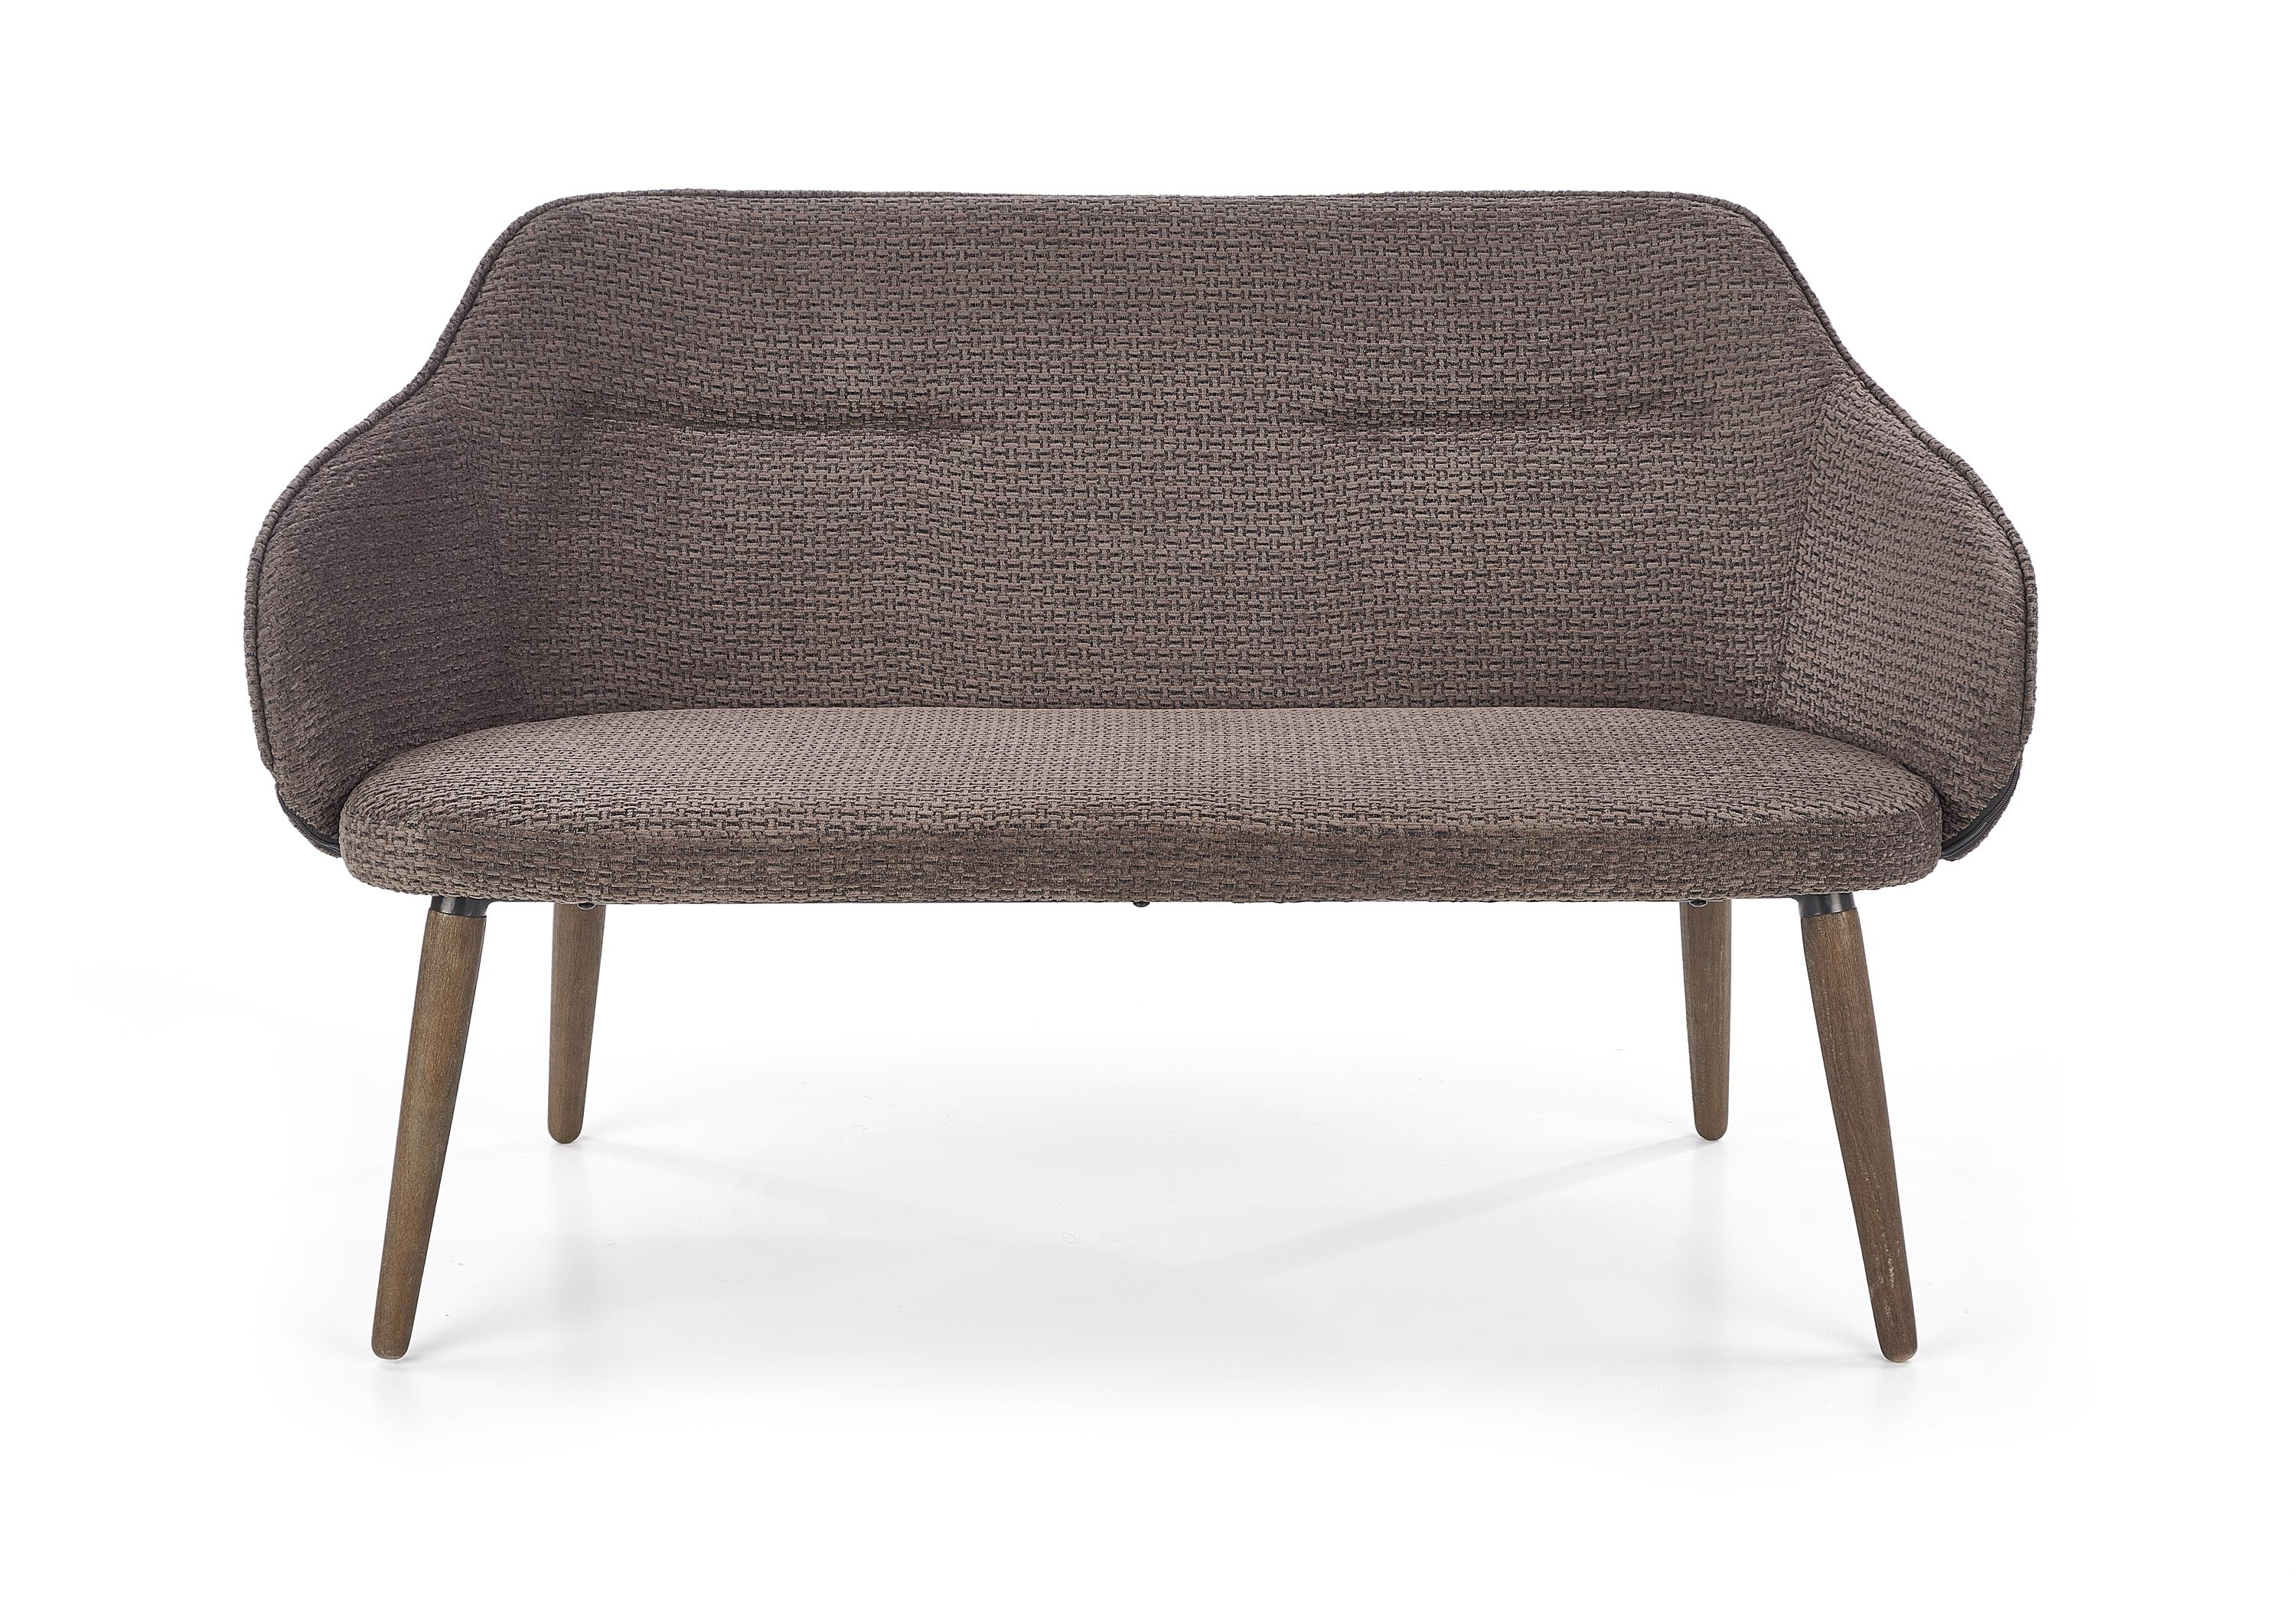 Canapea fixa tapitata cu stofa, 2 locuri Verano XL Dark Grey / Walnut, l130xA65xH77 cm imagine